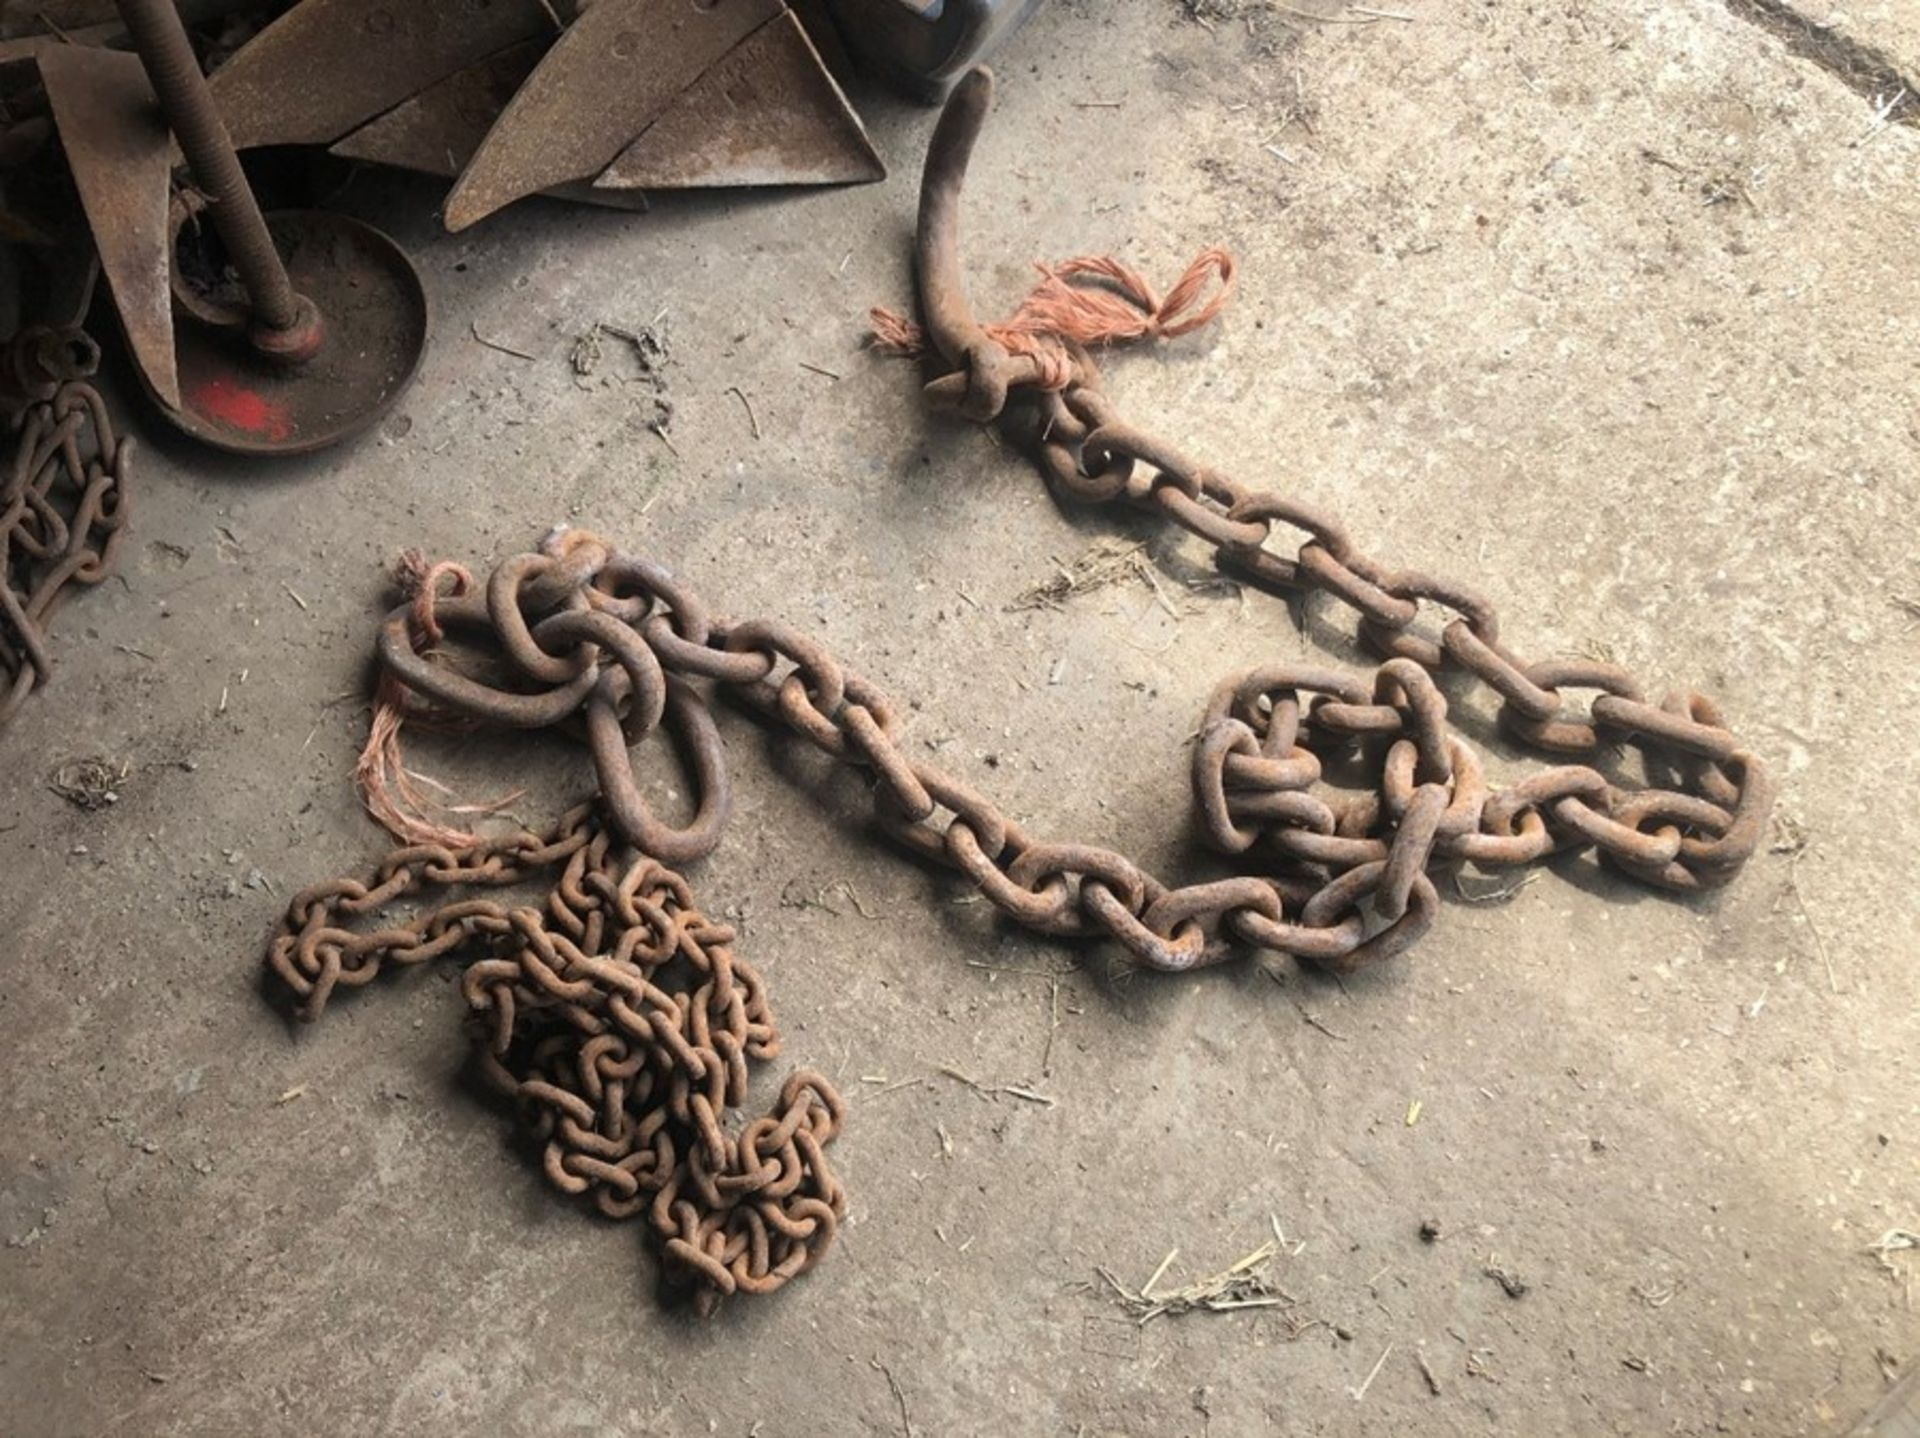 Pair of chains